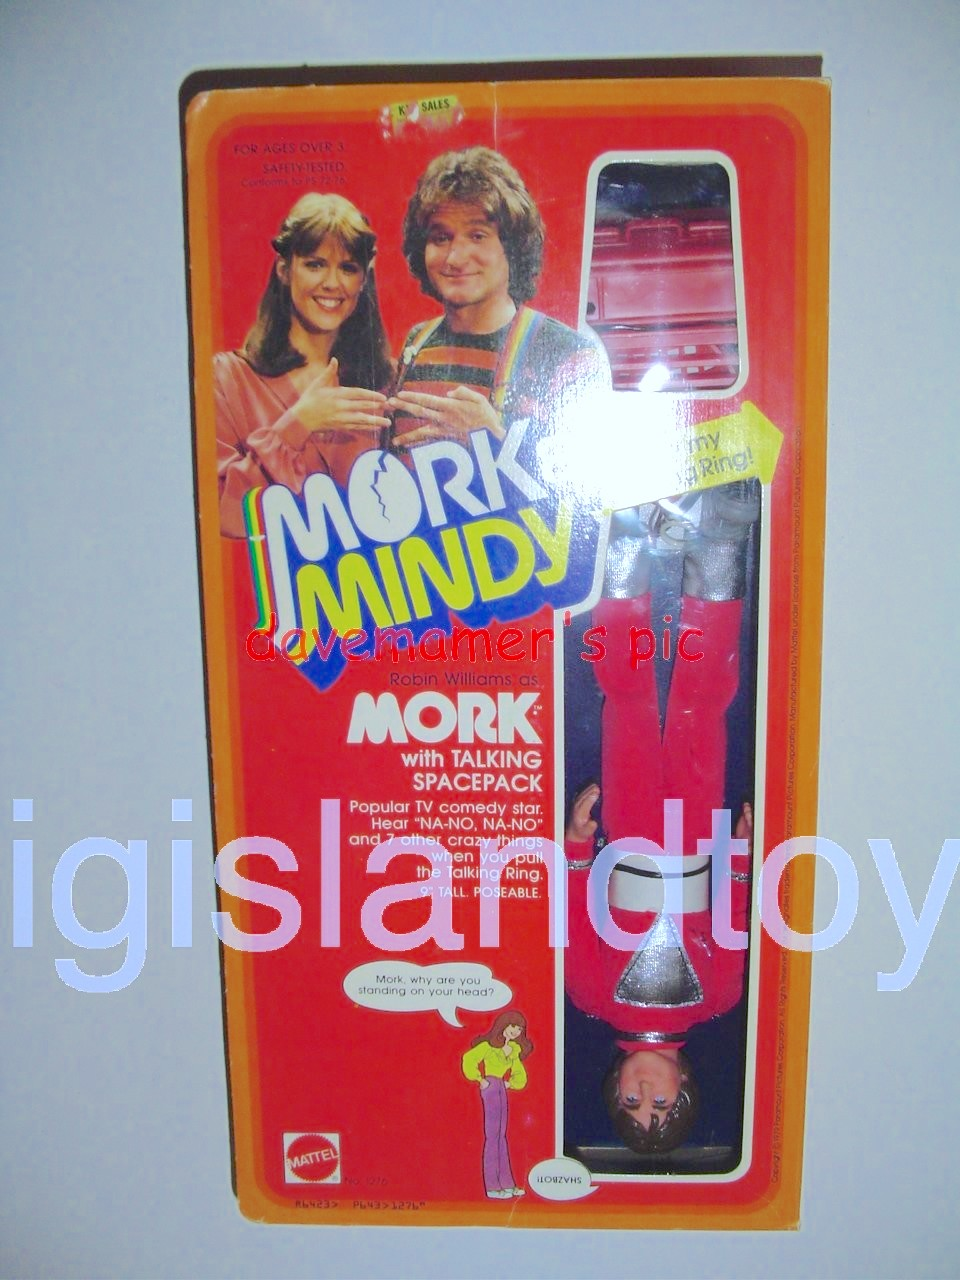 Mork & Mindy    Robin Williams as Mork with Talking Spacepack